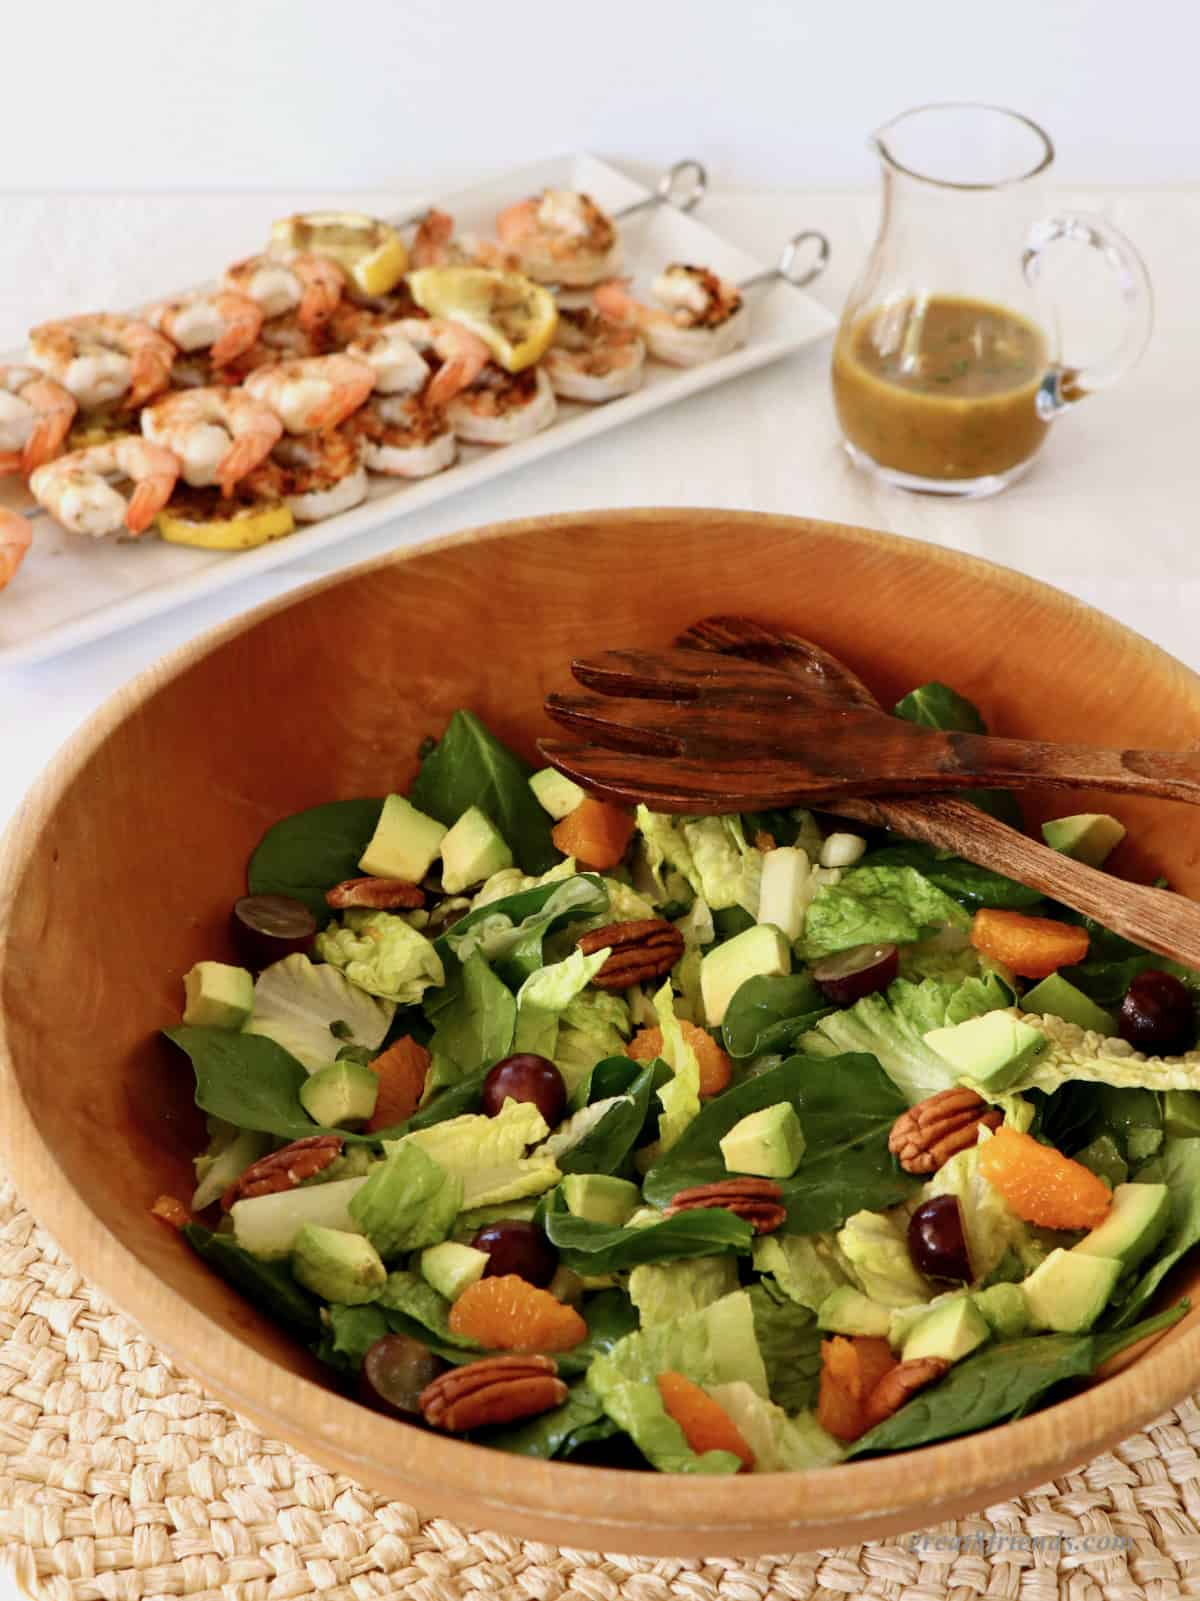 A salad with tangerine slices, pecans, grapes and avocados in a wooden bowl with a tray of grilled shrimp and pitcher of dressing in the background.